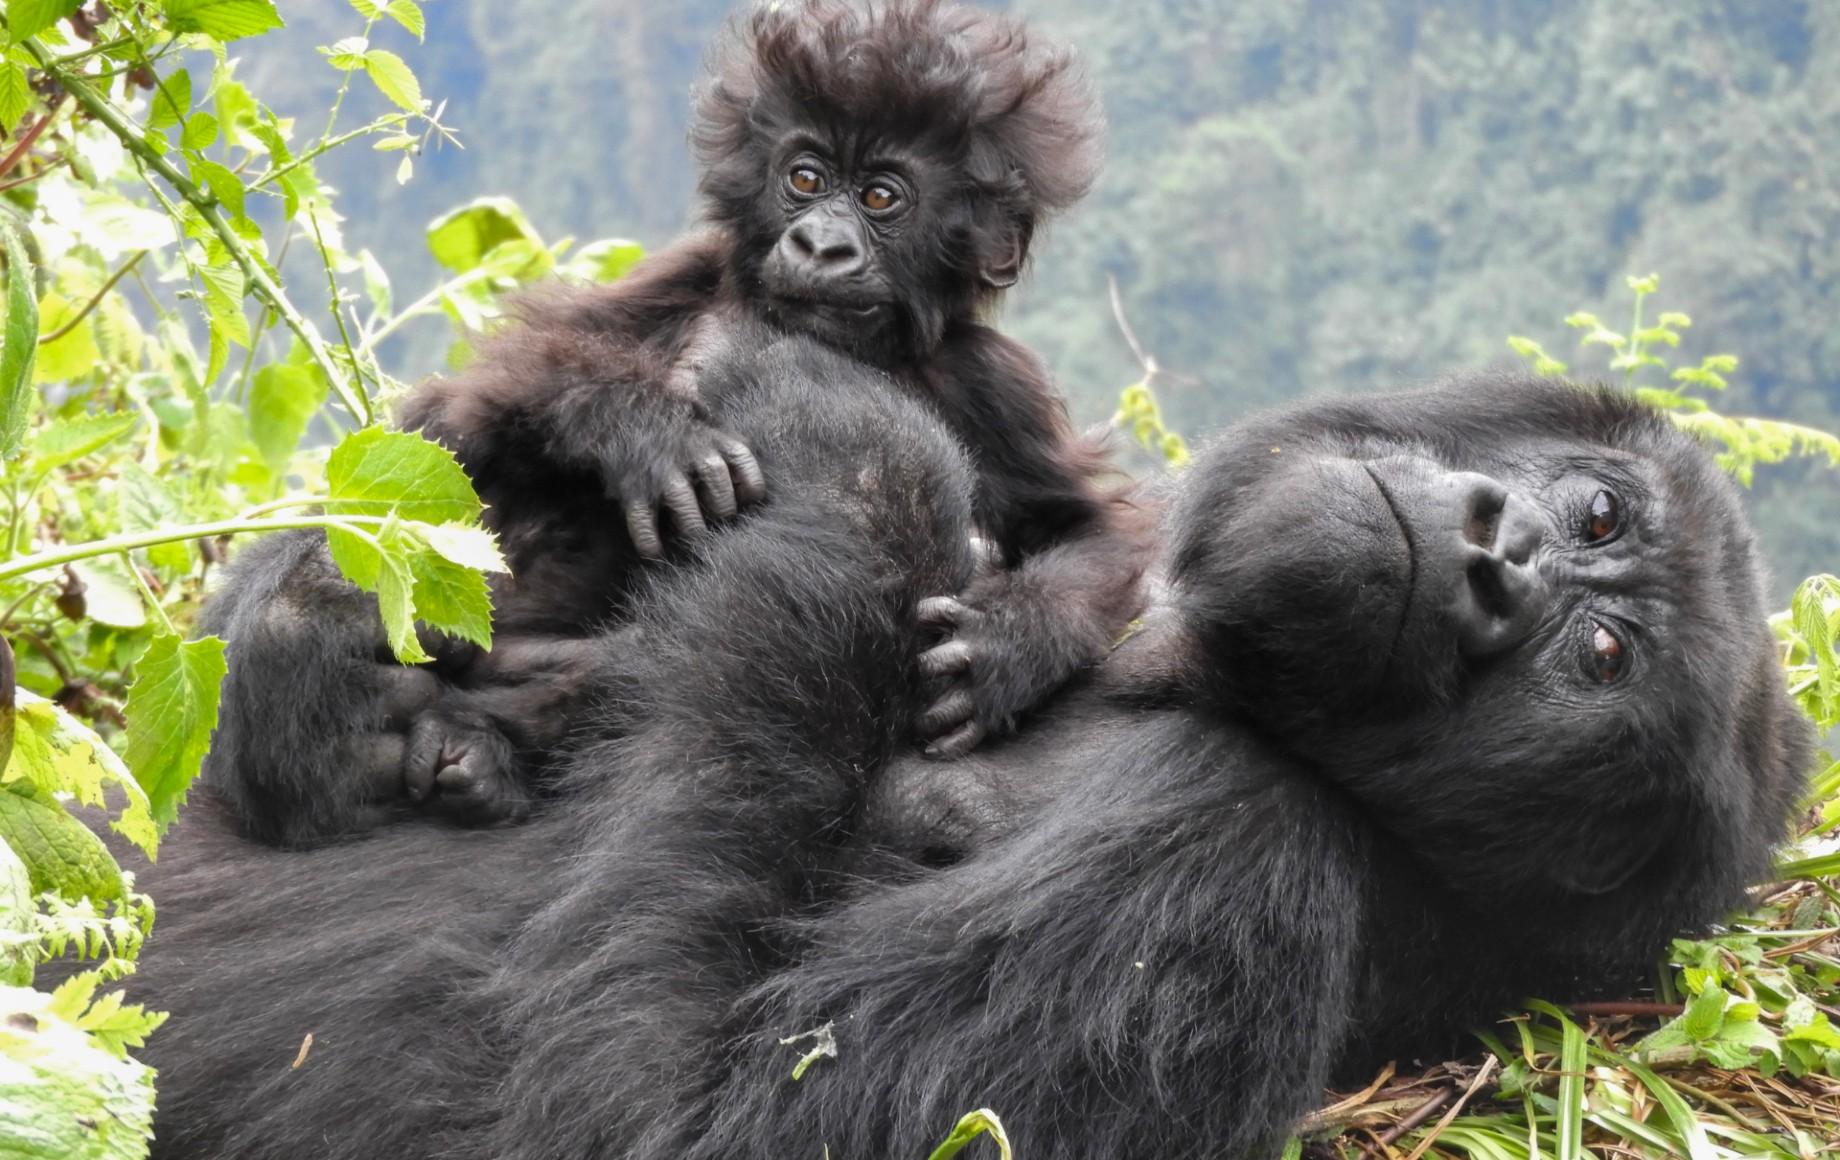 Two gorillas, a baby and an adult